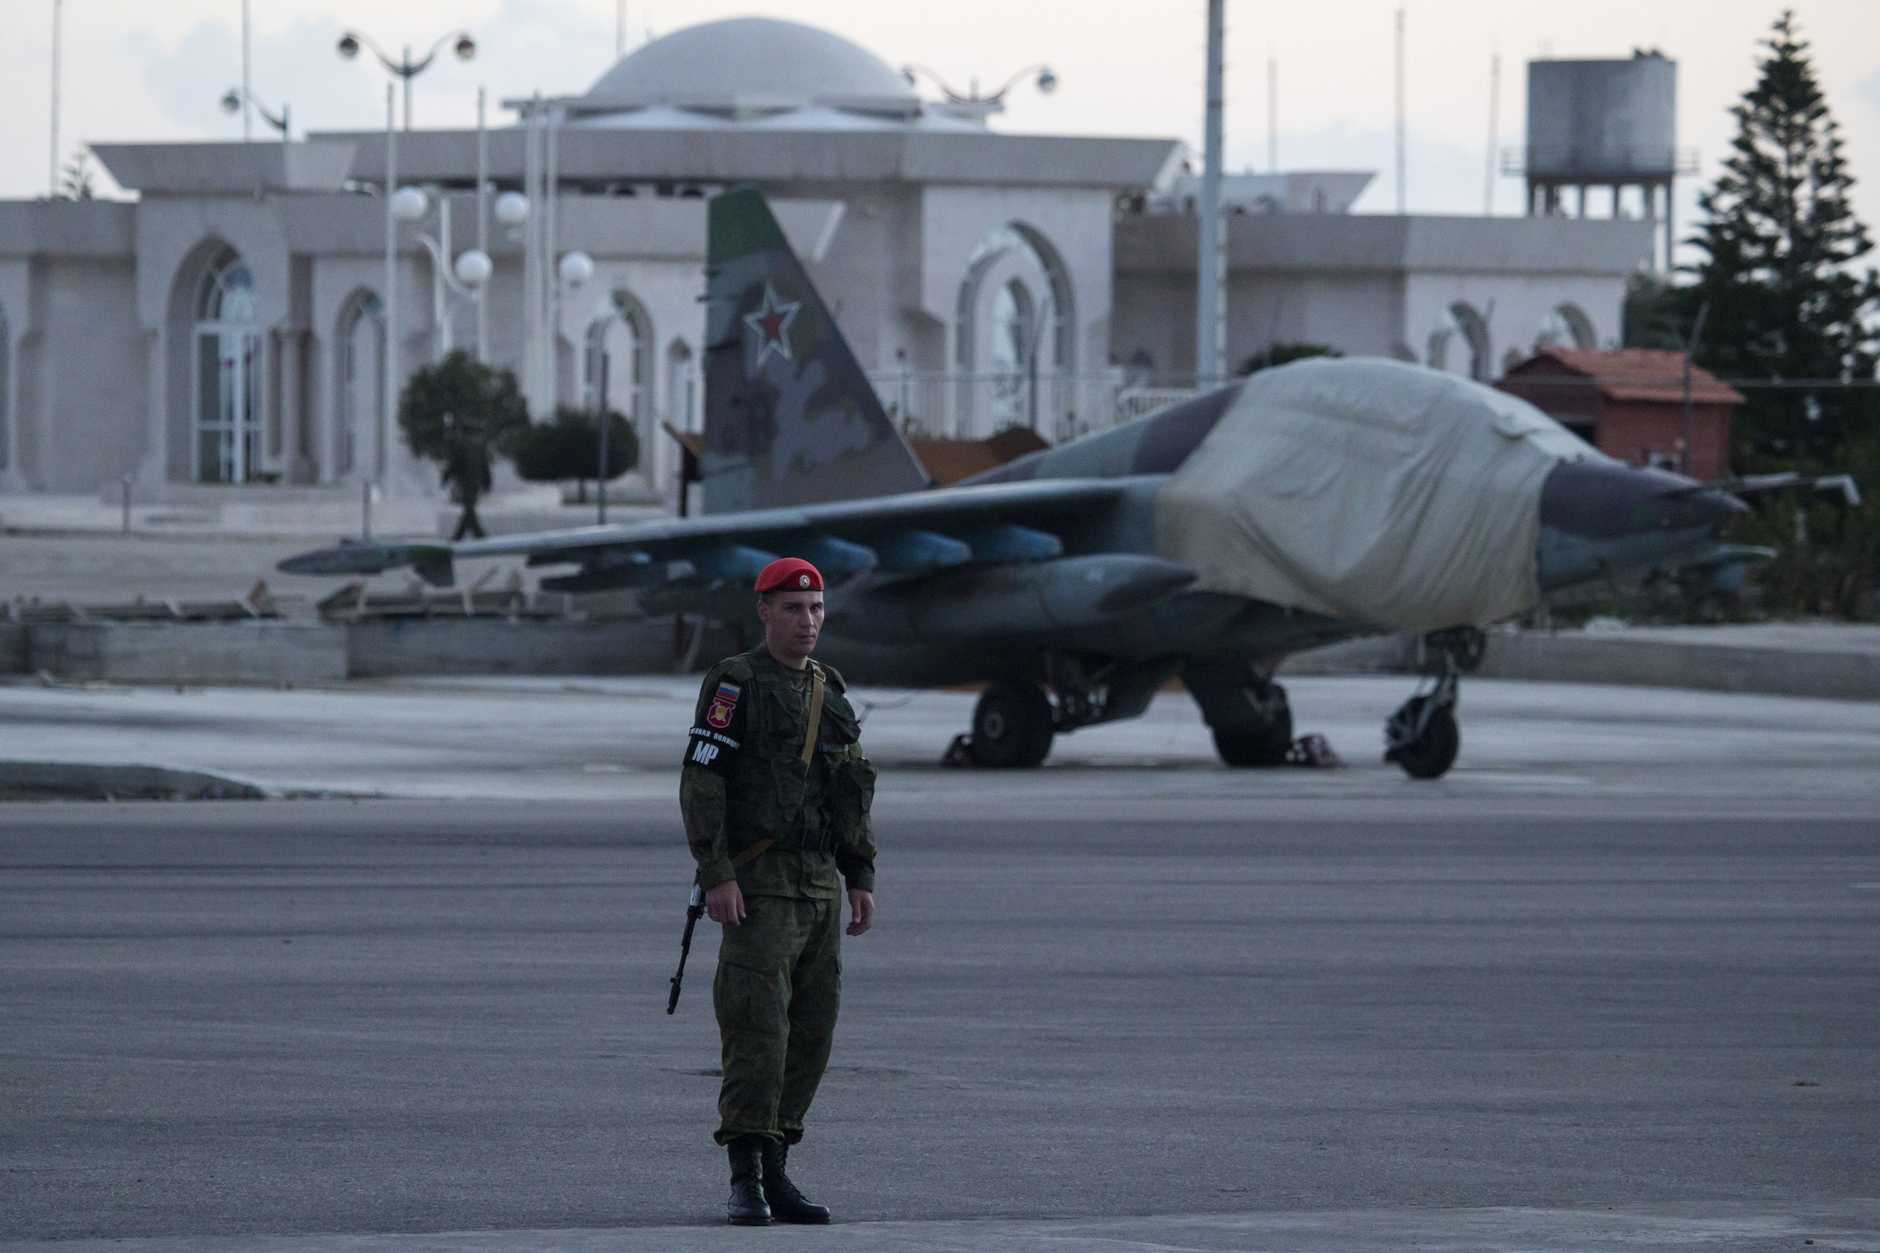 A Russian soldier guards a jet parked at Hemeimeem air base in Syria. Russian warplanes have mostly stayed on the ground since the cease-fire began. Photo: AP